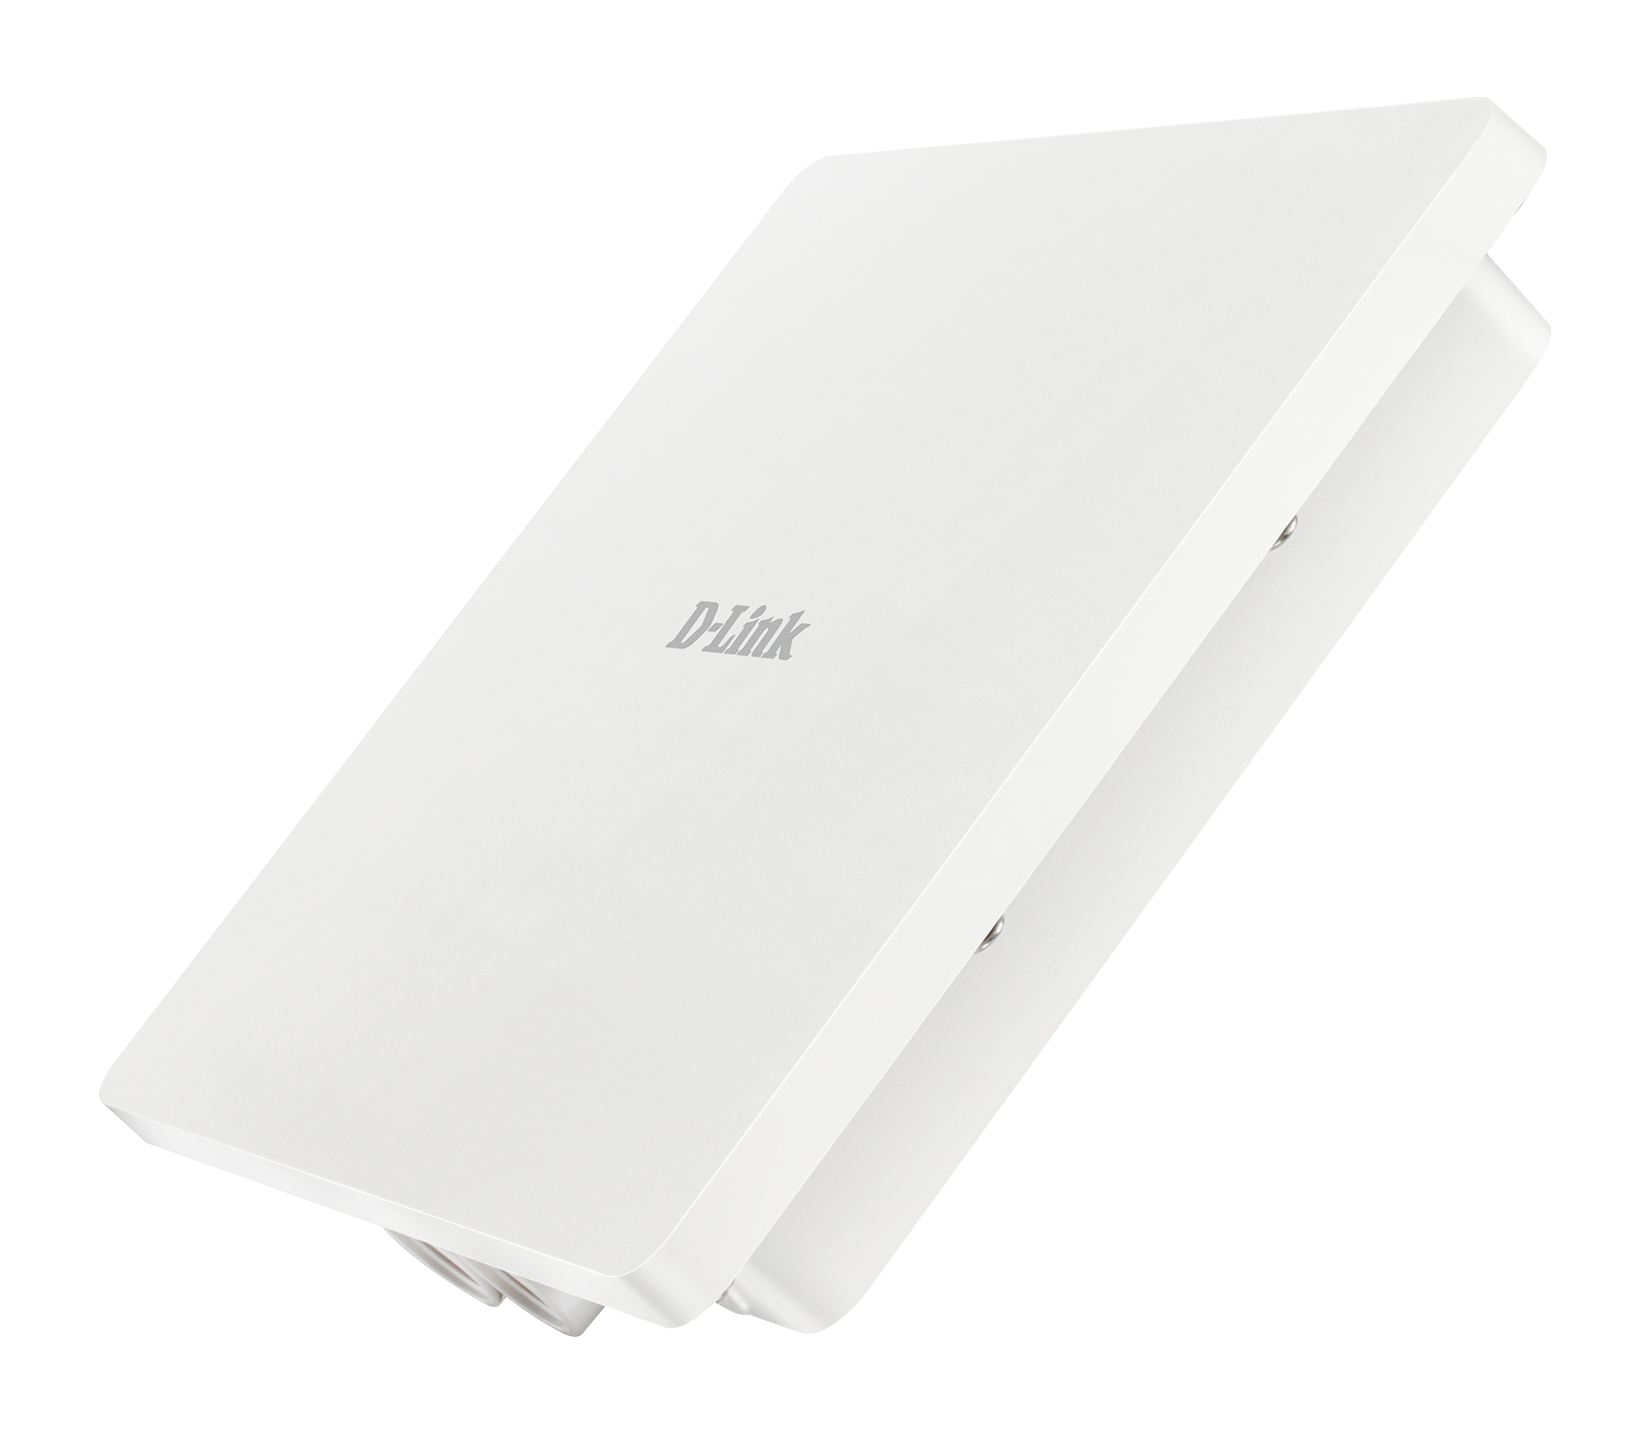 DAP-3666 Wireless AC1200 Wave 2 Dual-Band Outdoor PoE Access Point - Left Side Angled